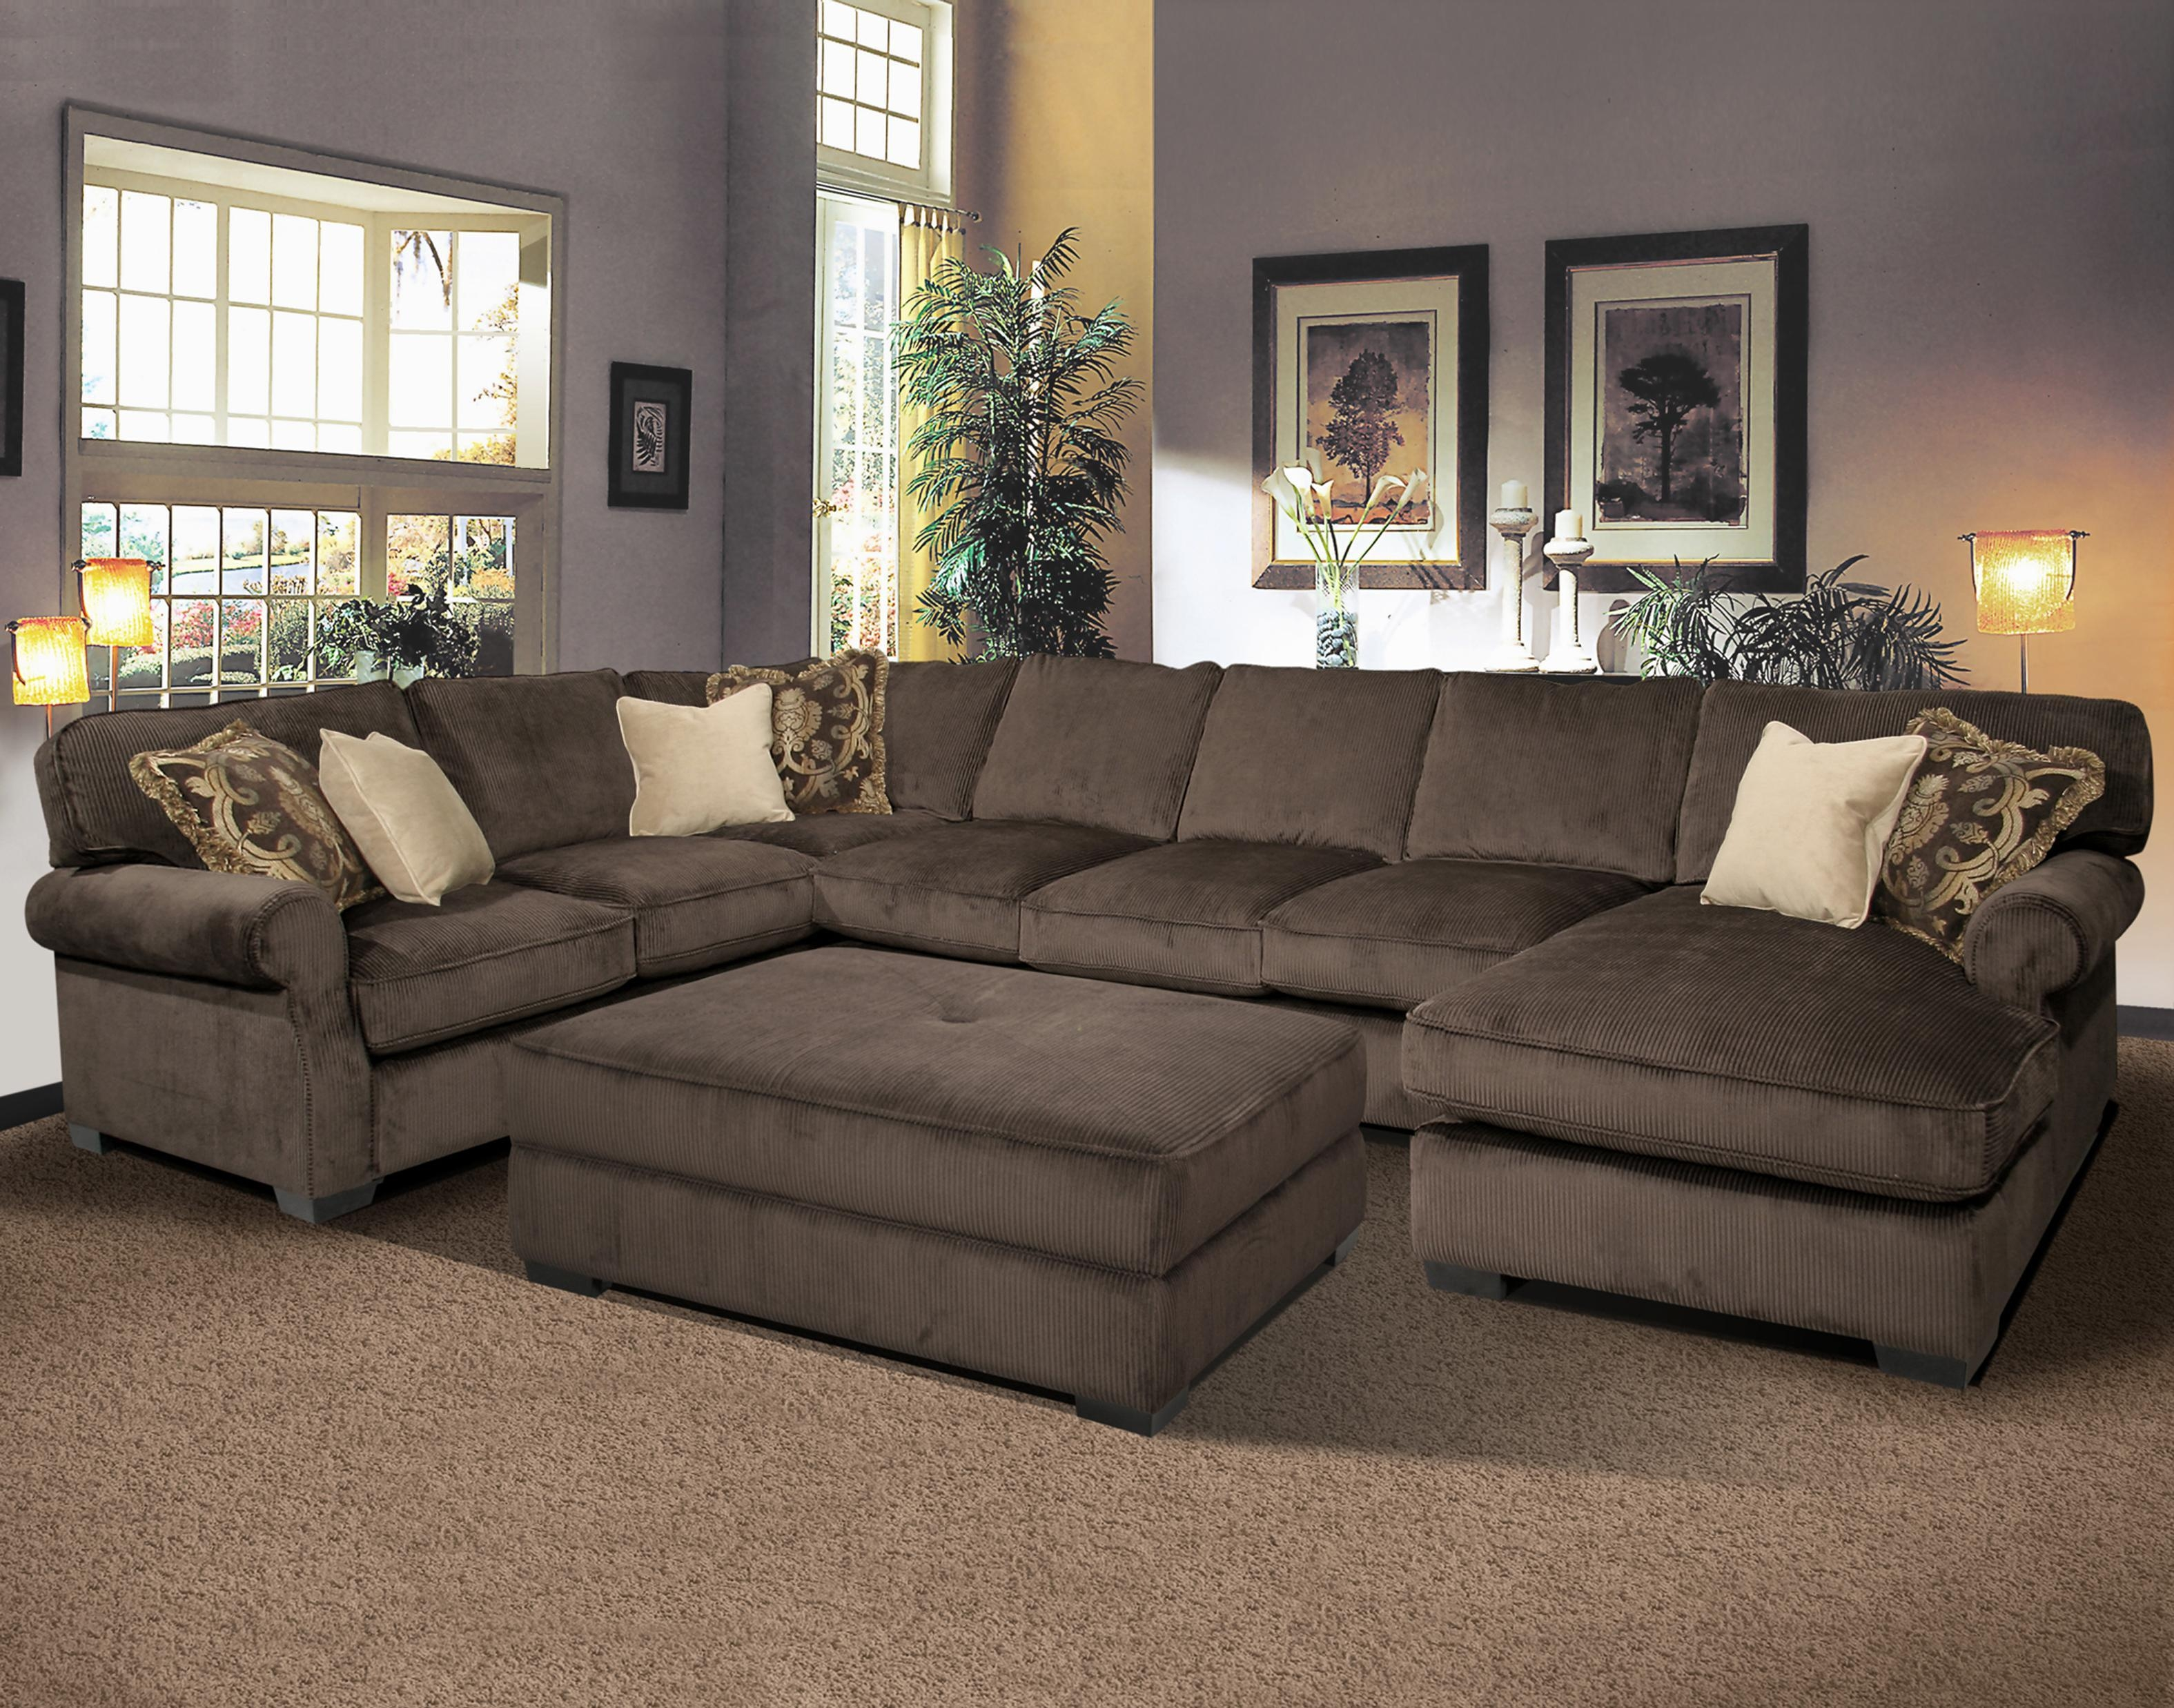 Furniture: Robert Michael Furniture Sectional | Robert Michaels With Down Filled Sofas And Sectionals (View 12 of 15)